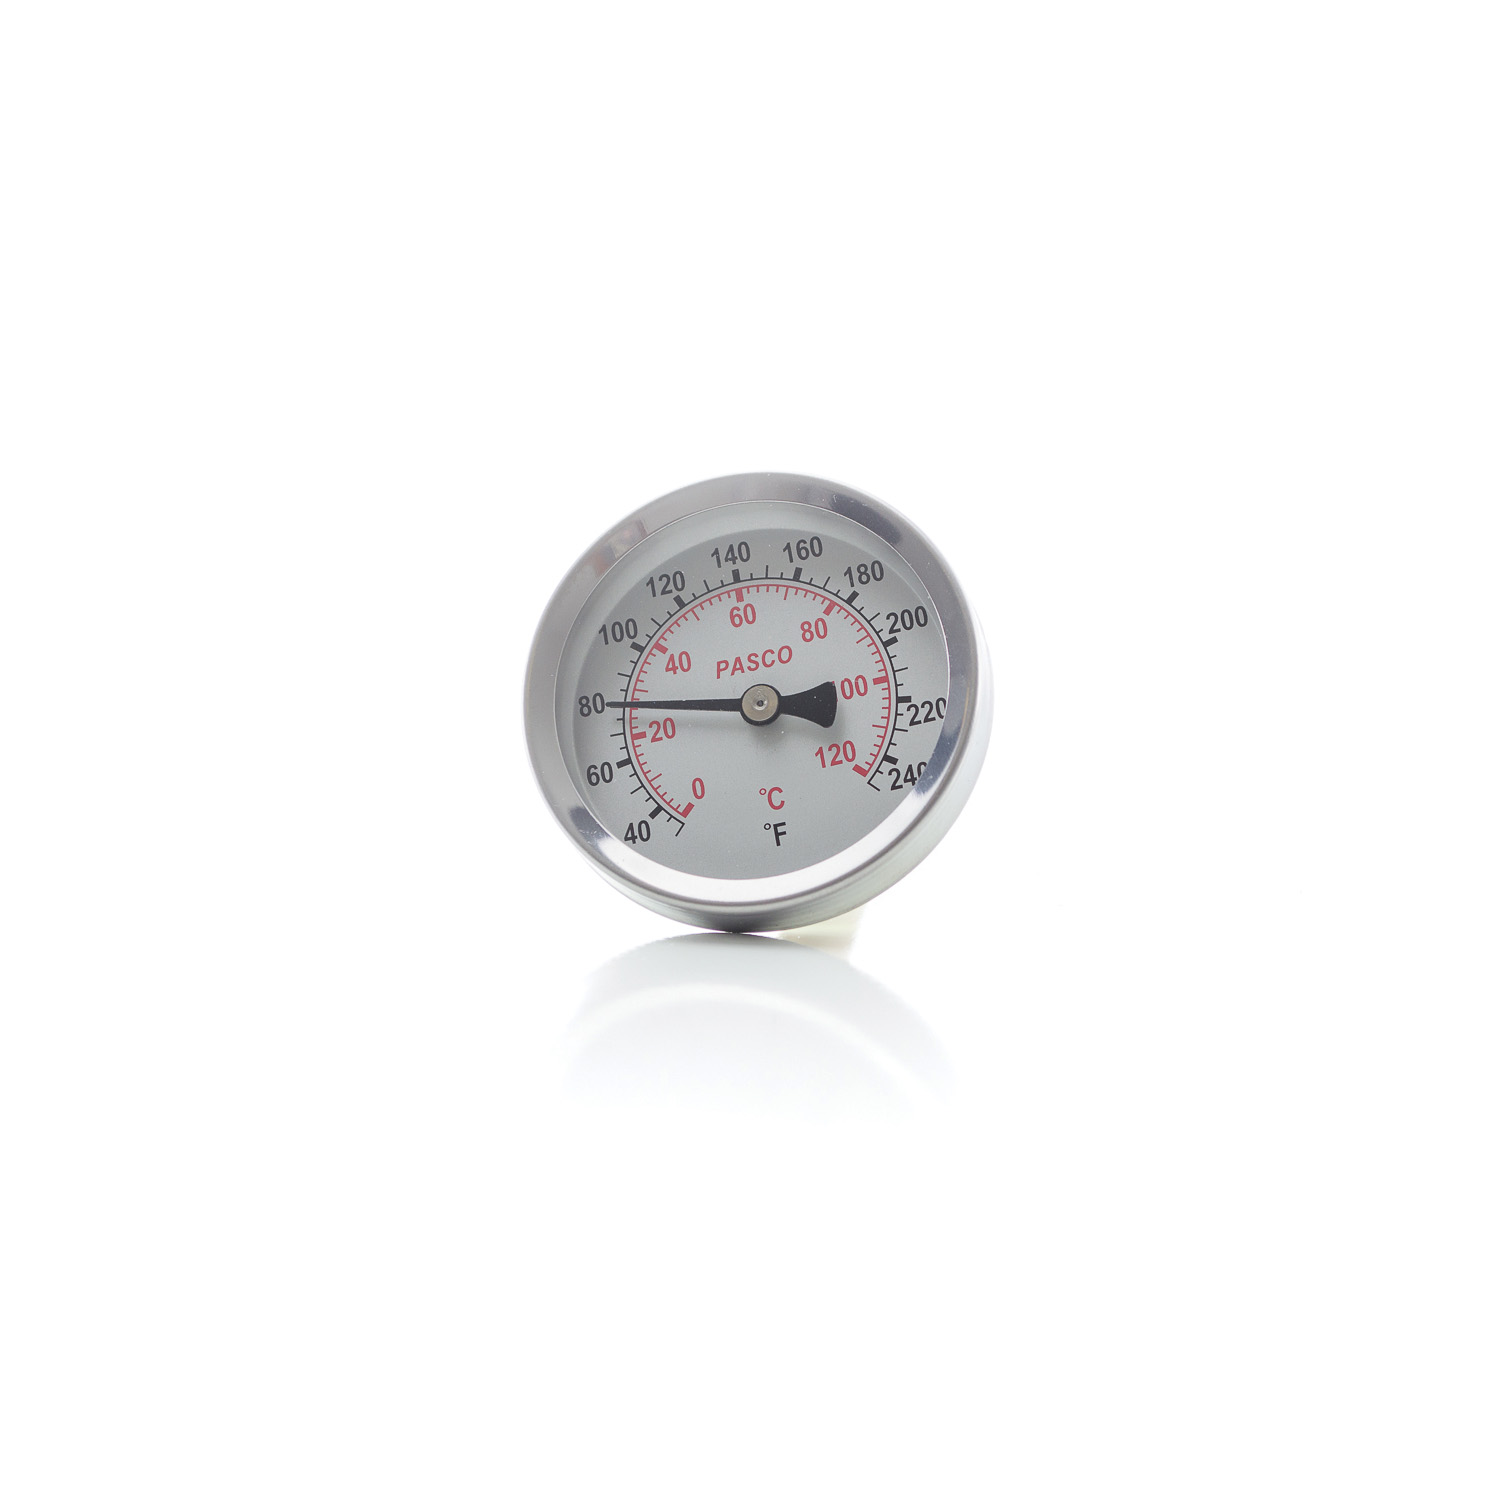 PASCO 1449 Economical Dial Thermometer, 2-1/2 in, 1/2 in MNPT Back Mount, 40 to 250 deg F